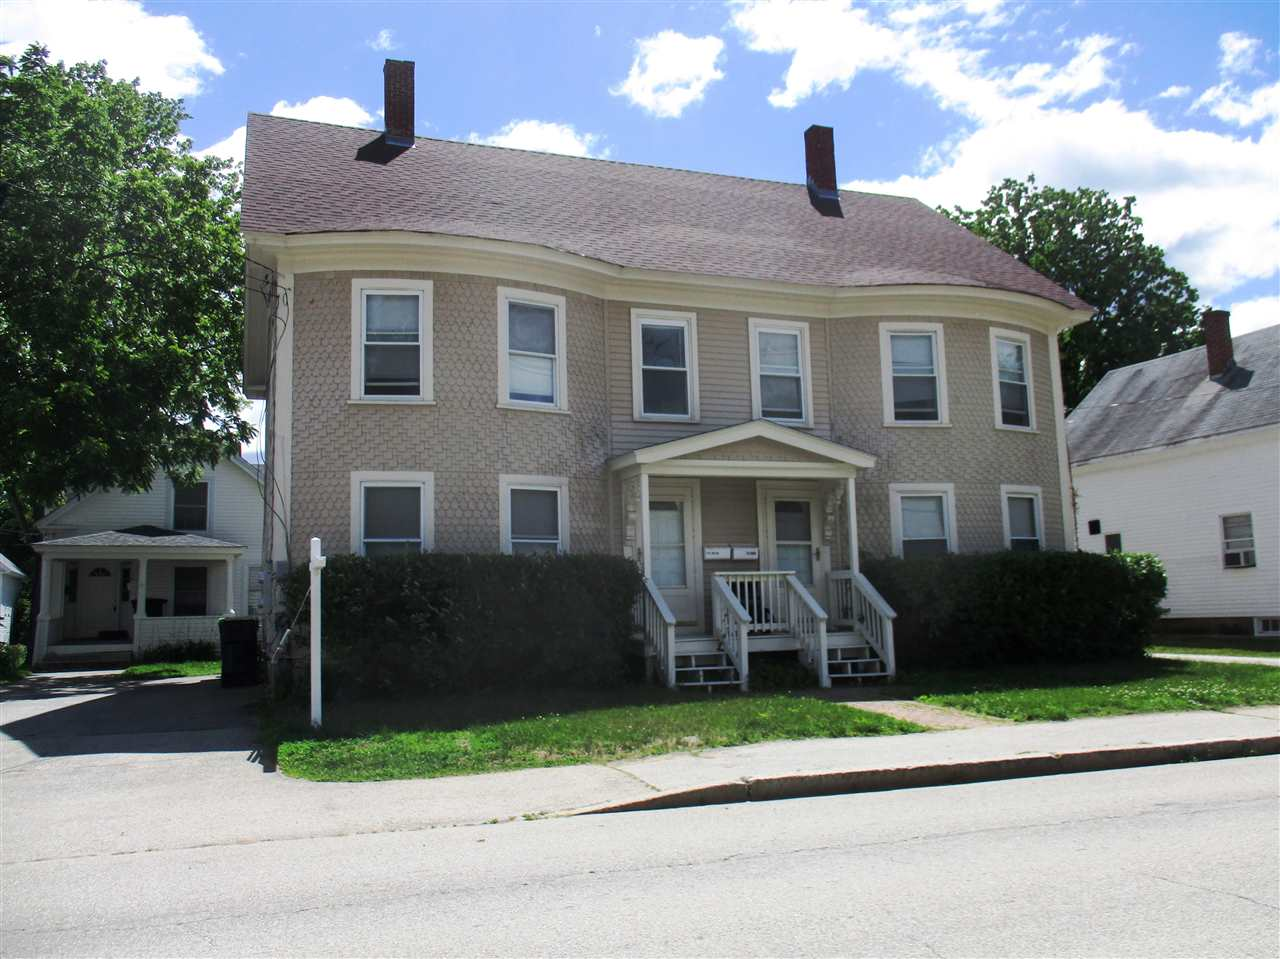 image of Milford NH  2 Unit Multi Family | sq.ft. 4544